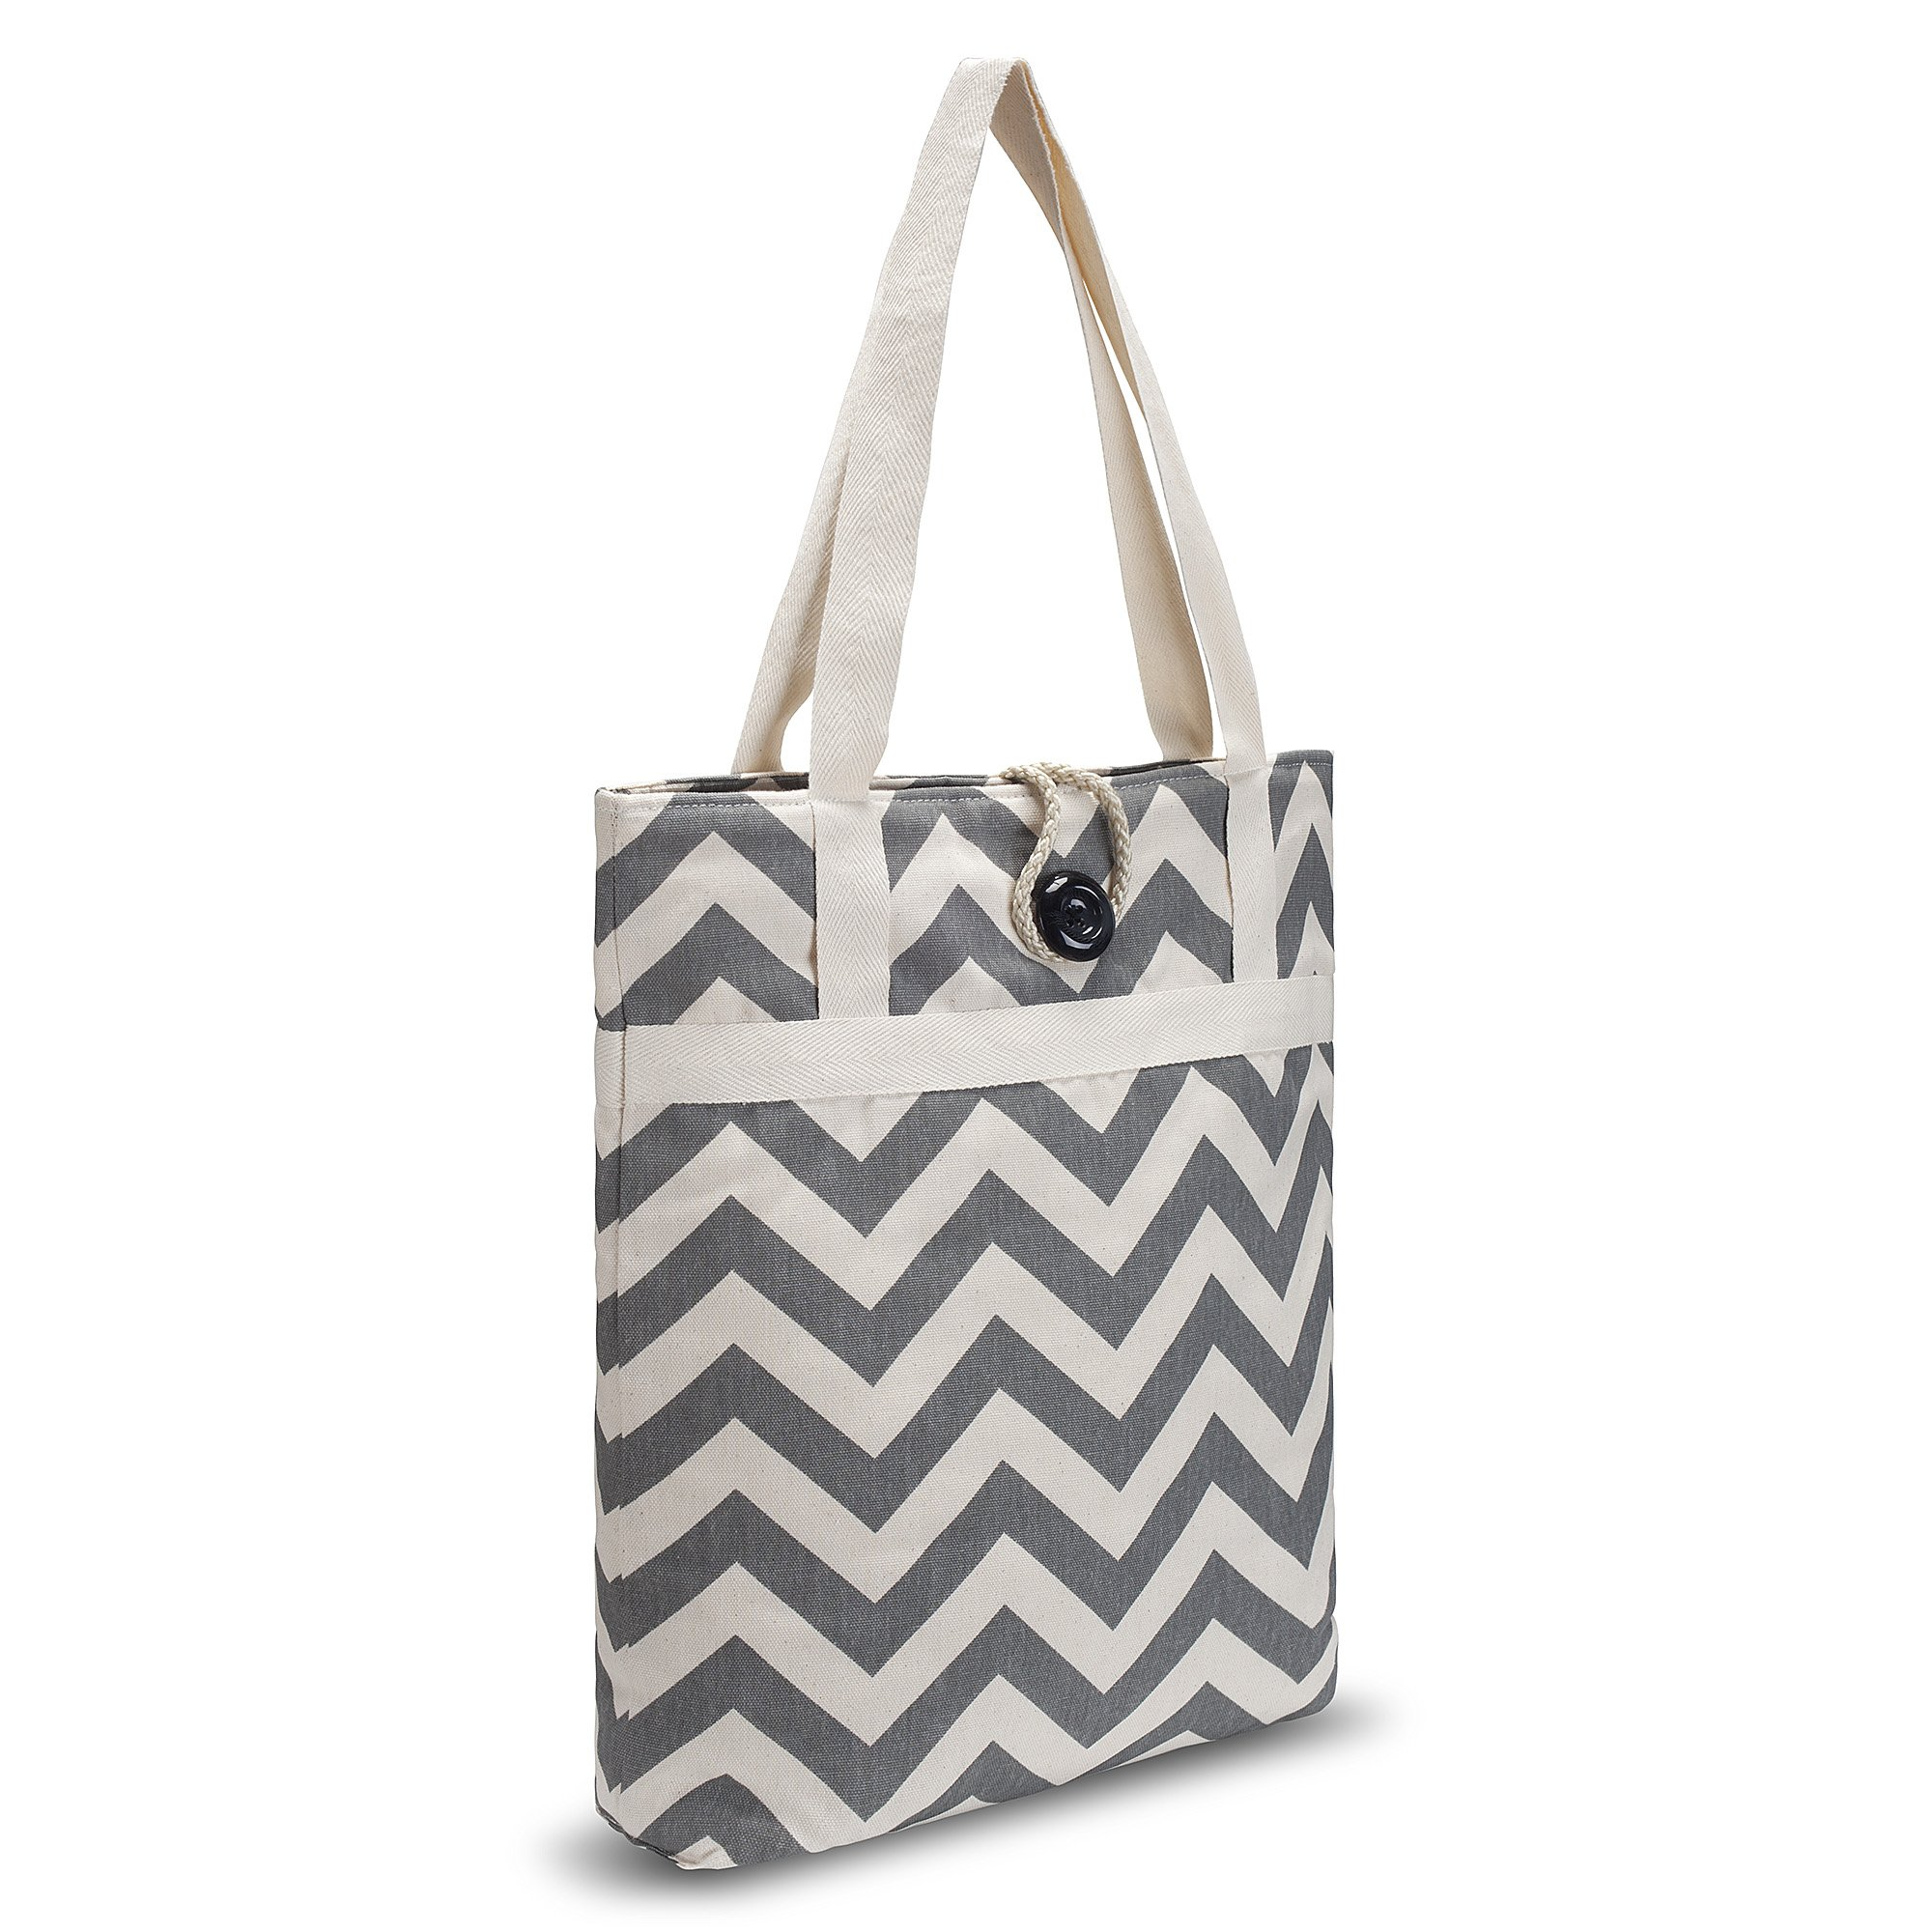 Kuzy - Tote Bag Travel Bag Cotton Handmade 16-inch for Beach, Pool & School and to Carry MacBook & Laptop, Book Bags - Chevron Zig-Zag Grey by Kuzy (Image #1)